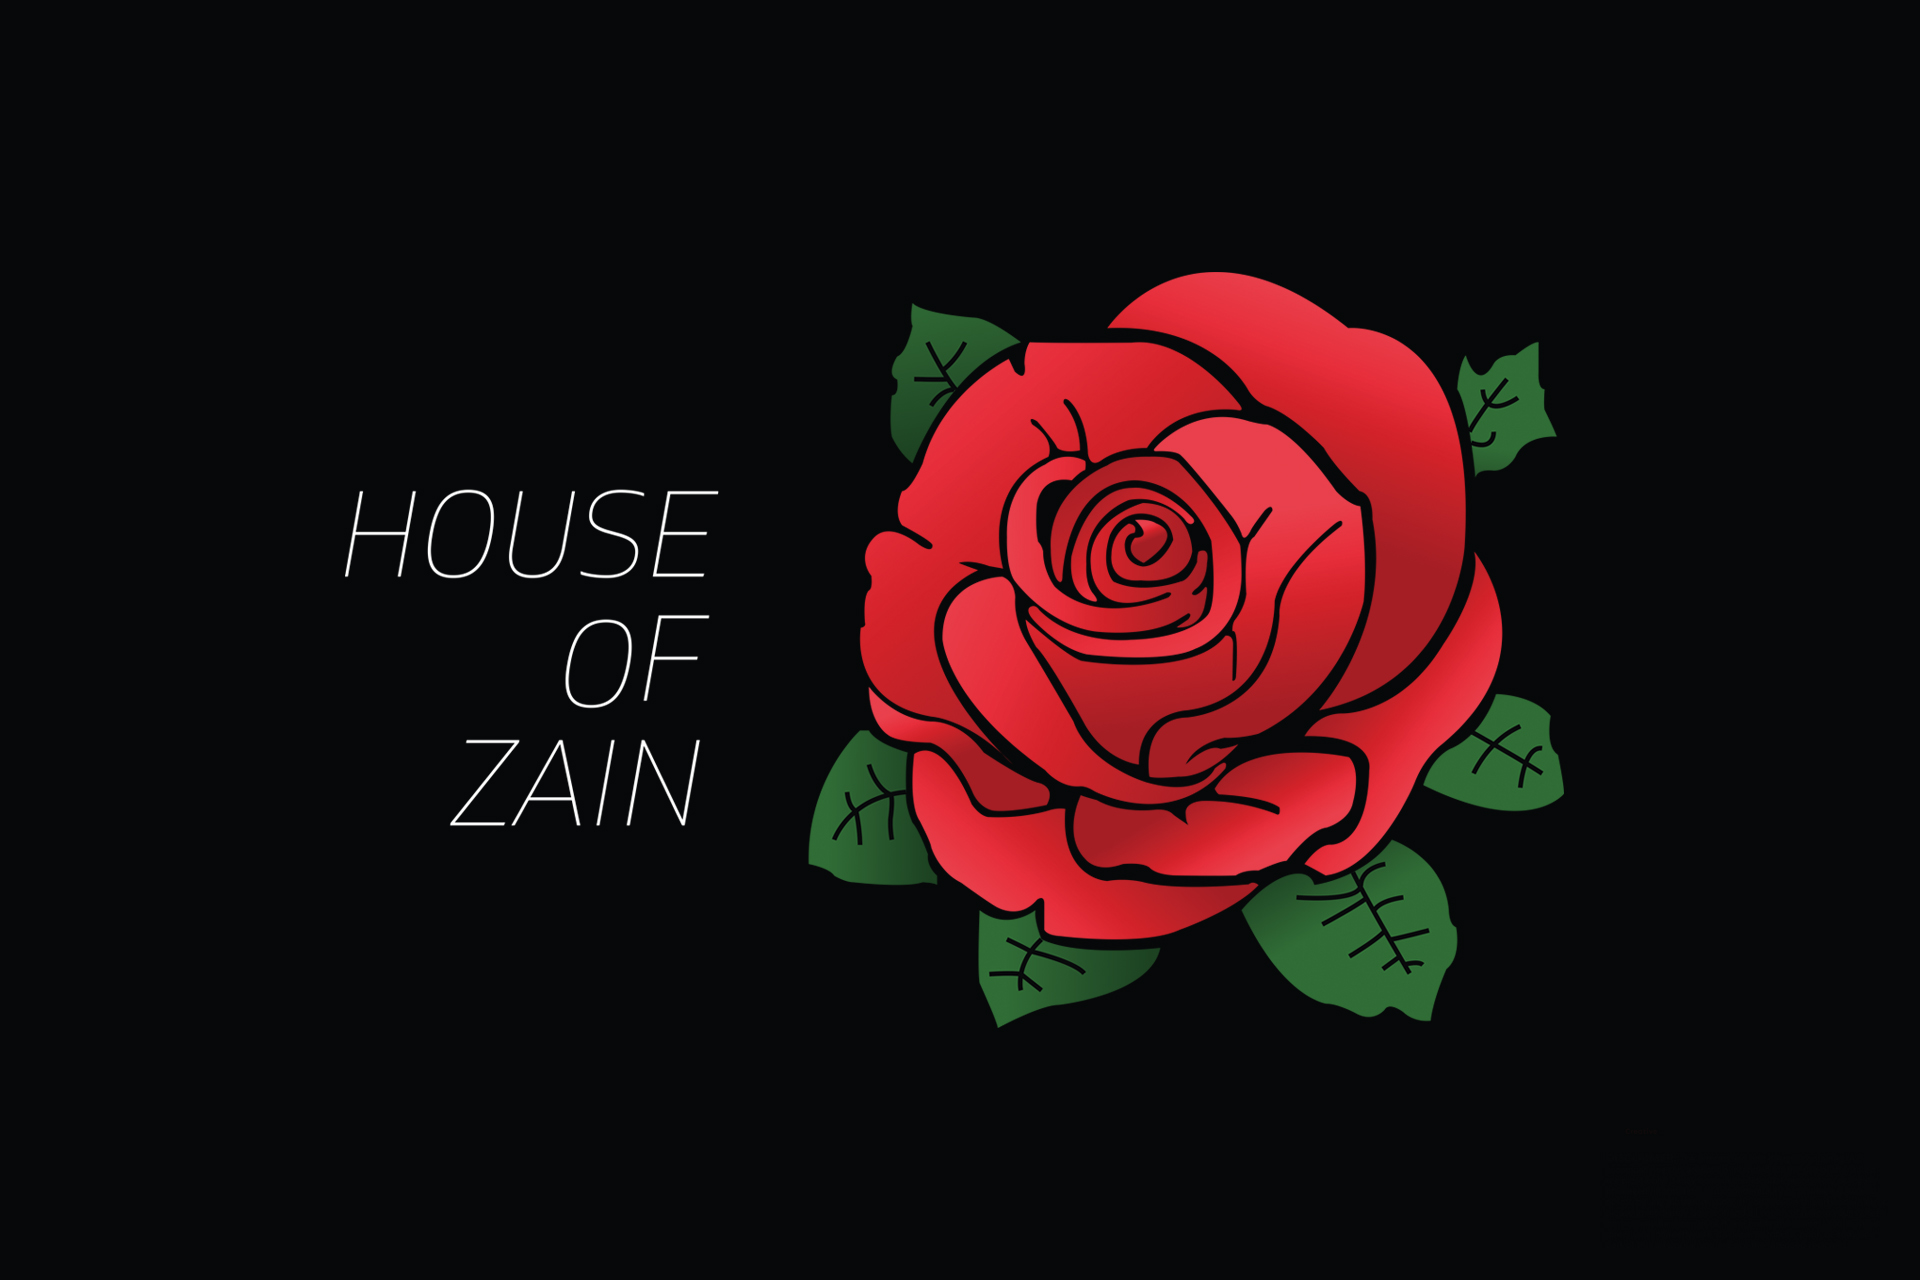 Day 25 House of Zain